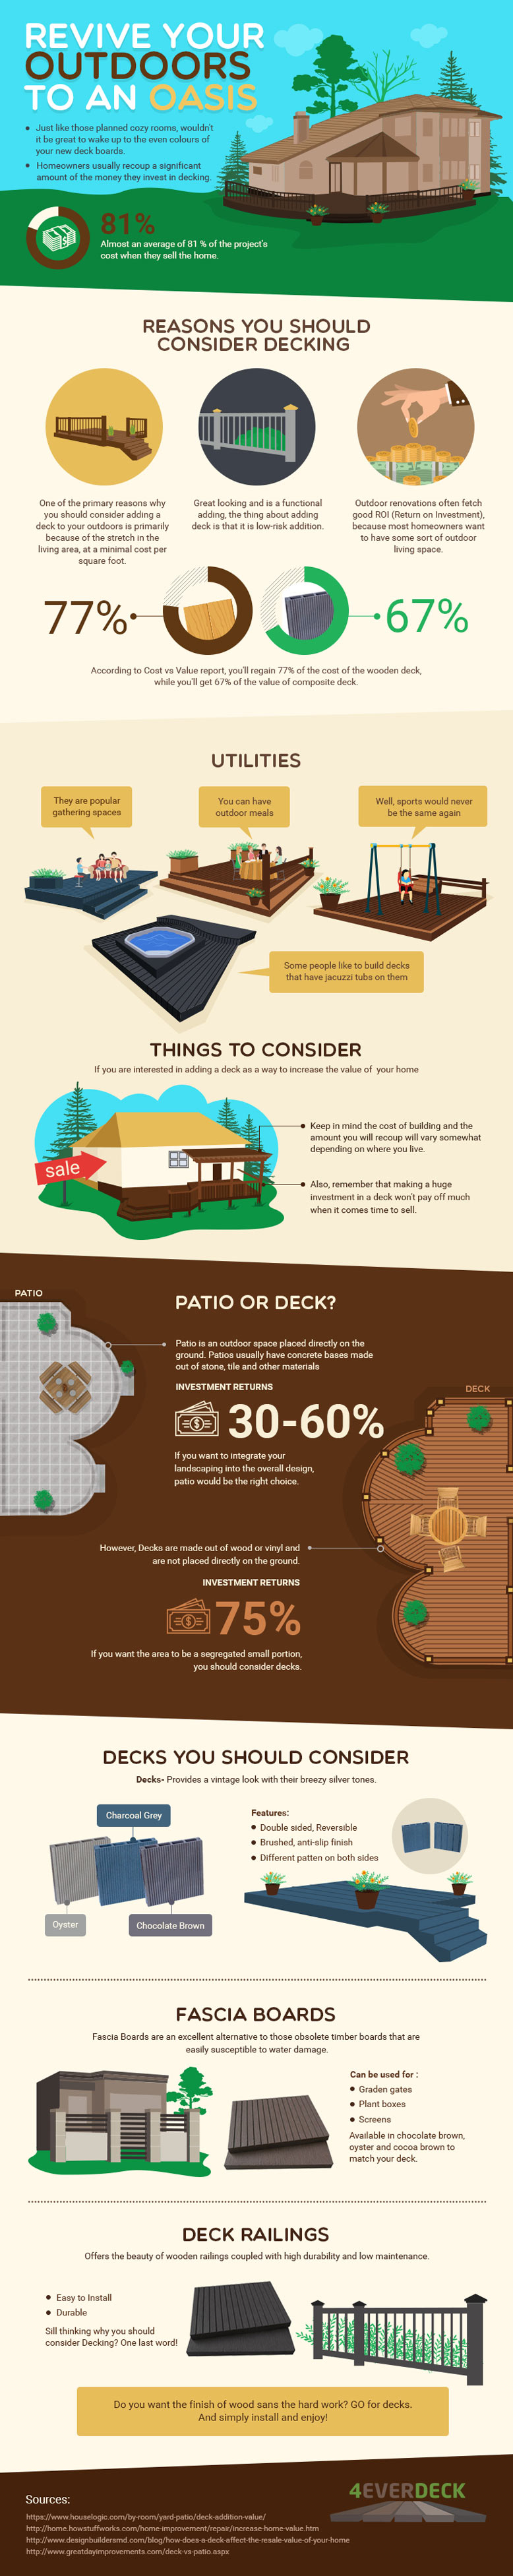 revive-your-outdoors-to-an-oasis-[infographic]